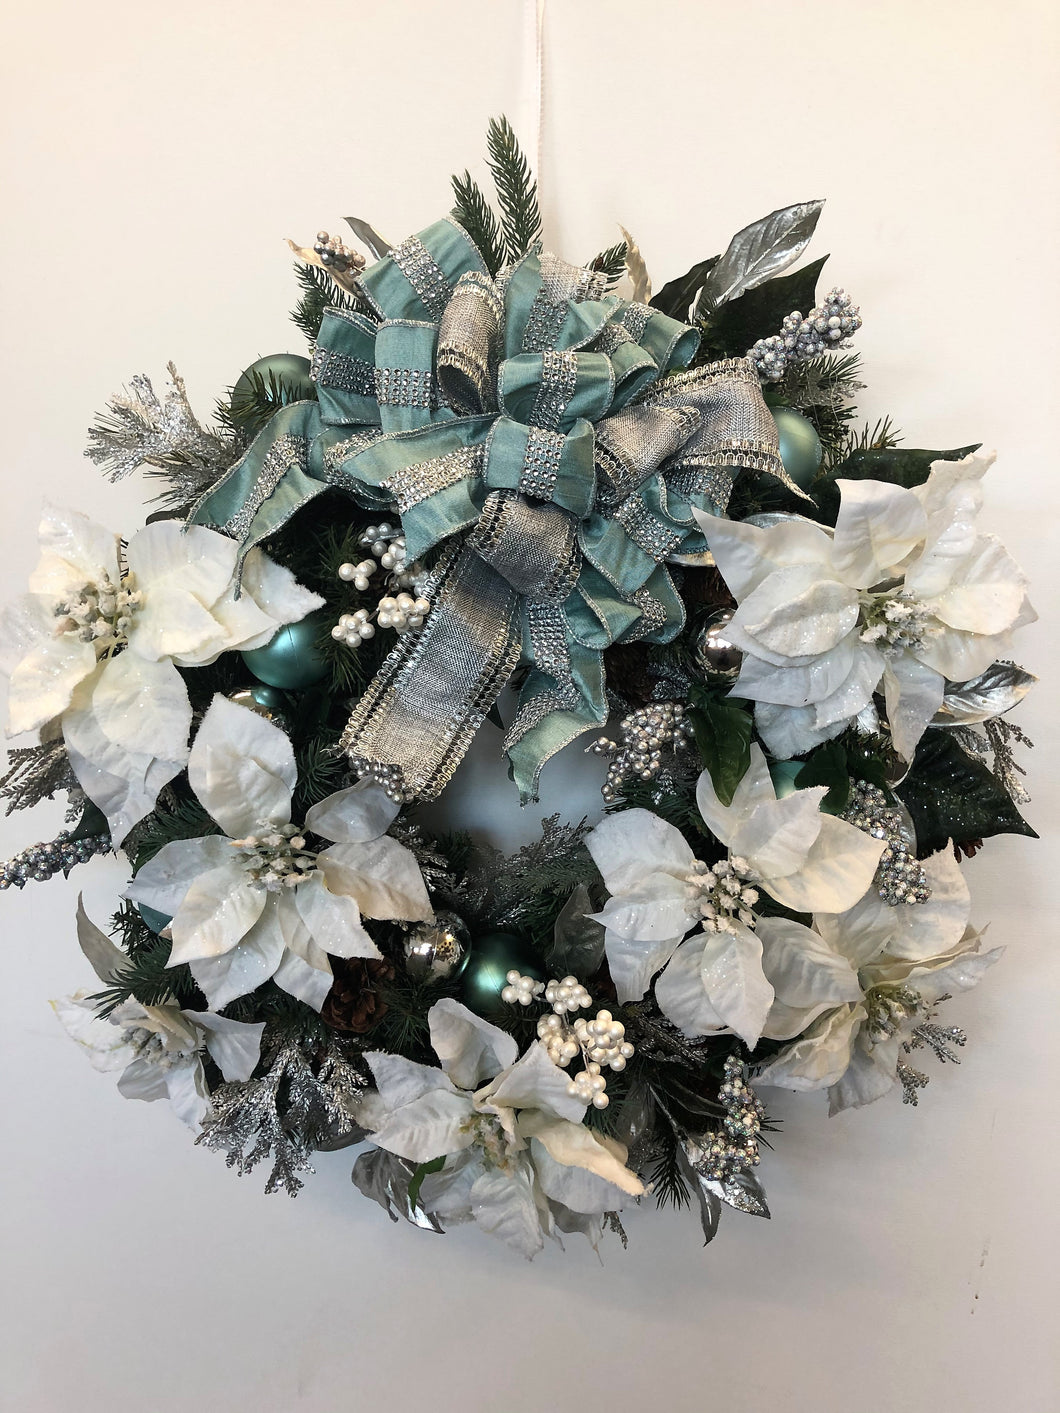 Blue and White Silk Floral Holiday Wreath with White Poinsettias/Hol07 - April's Garden Wreath